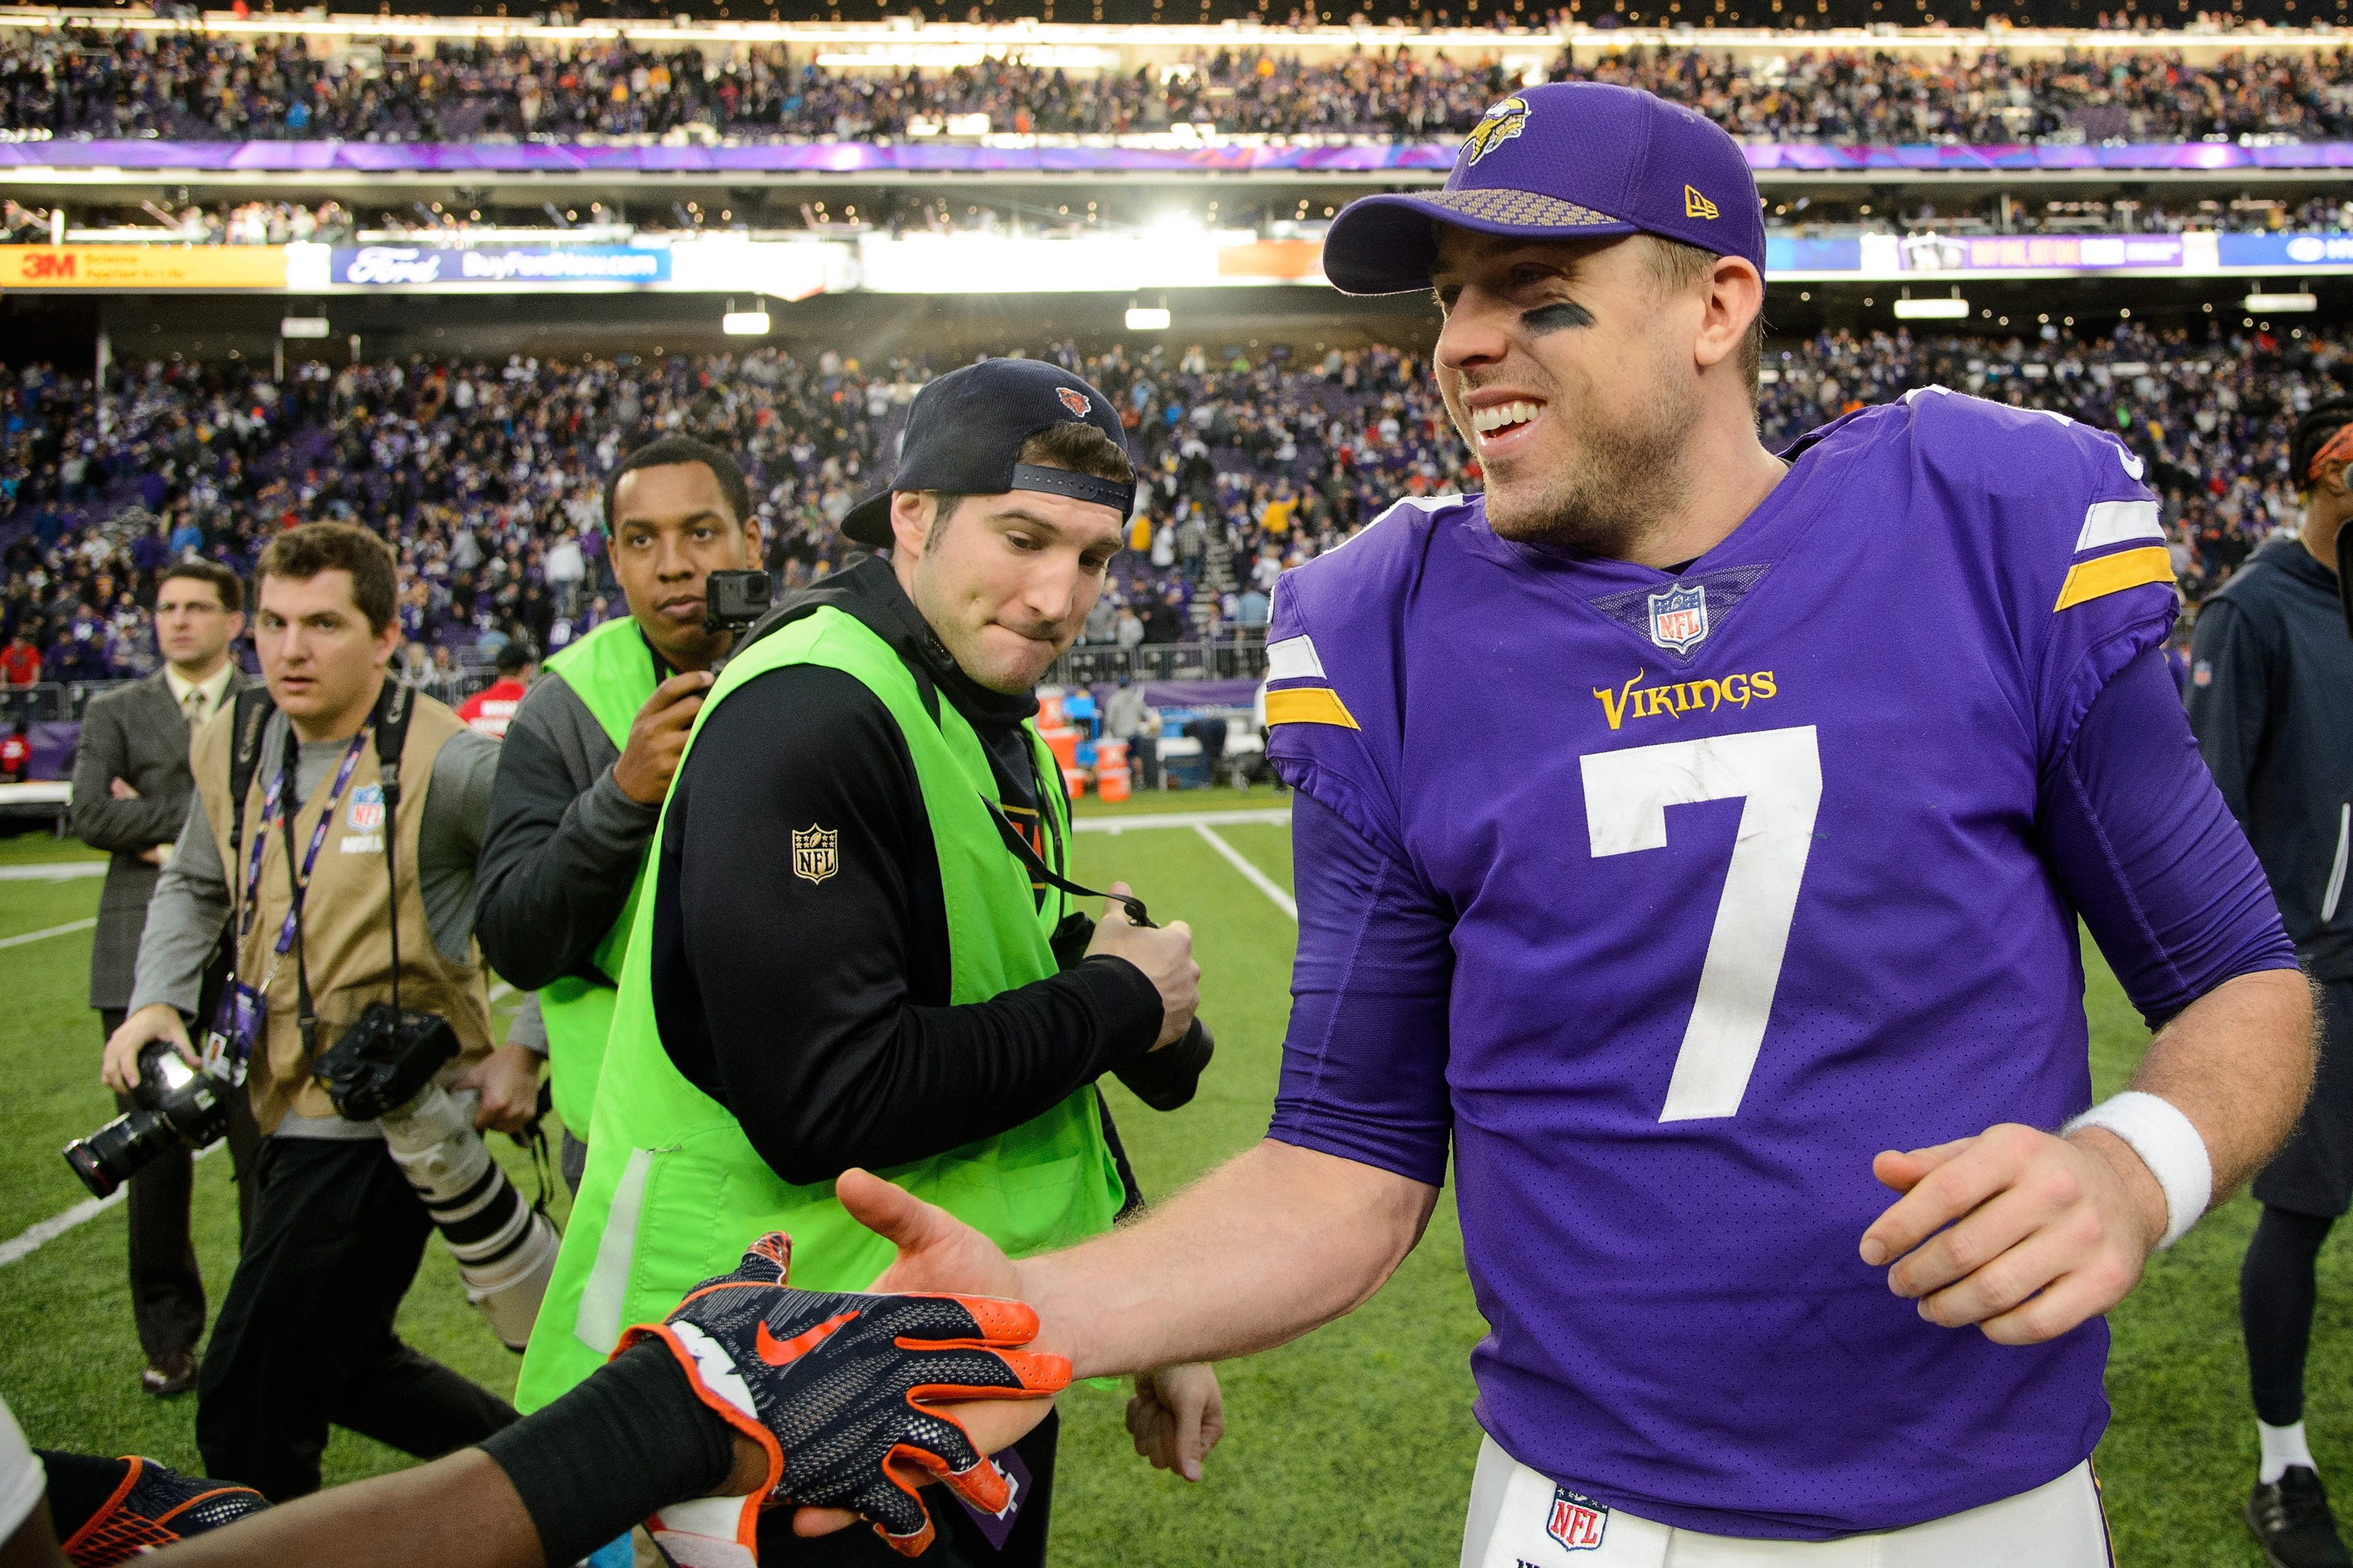 Case Keenum on Pat Shurmur, John Elway and being a breakout NFL star